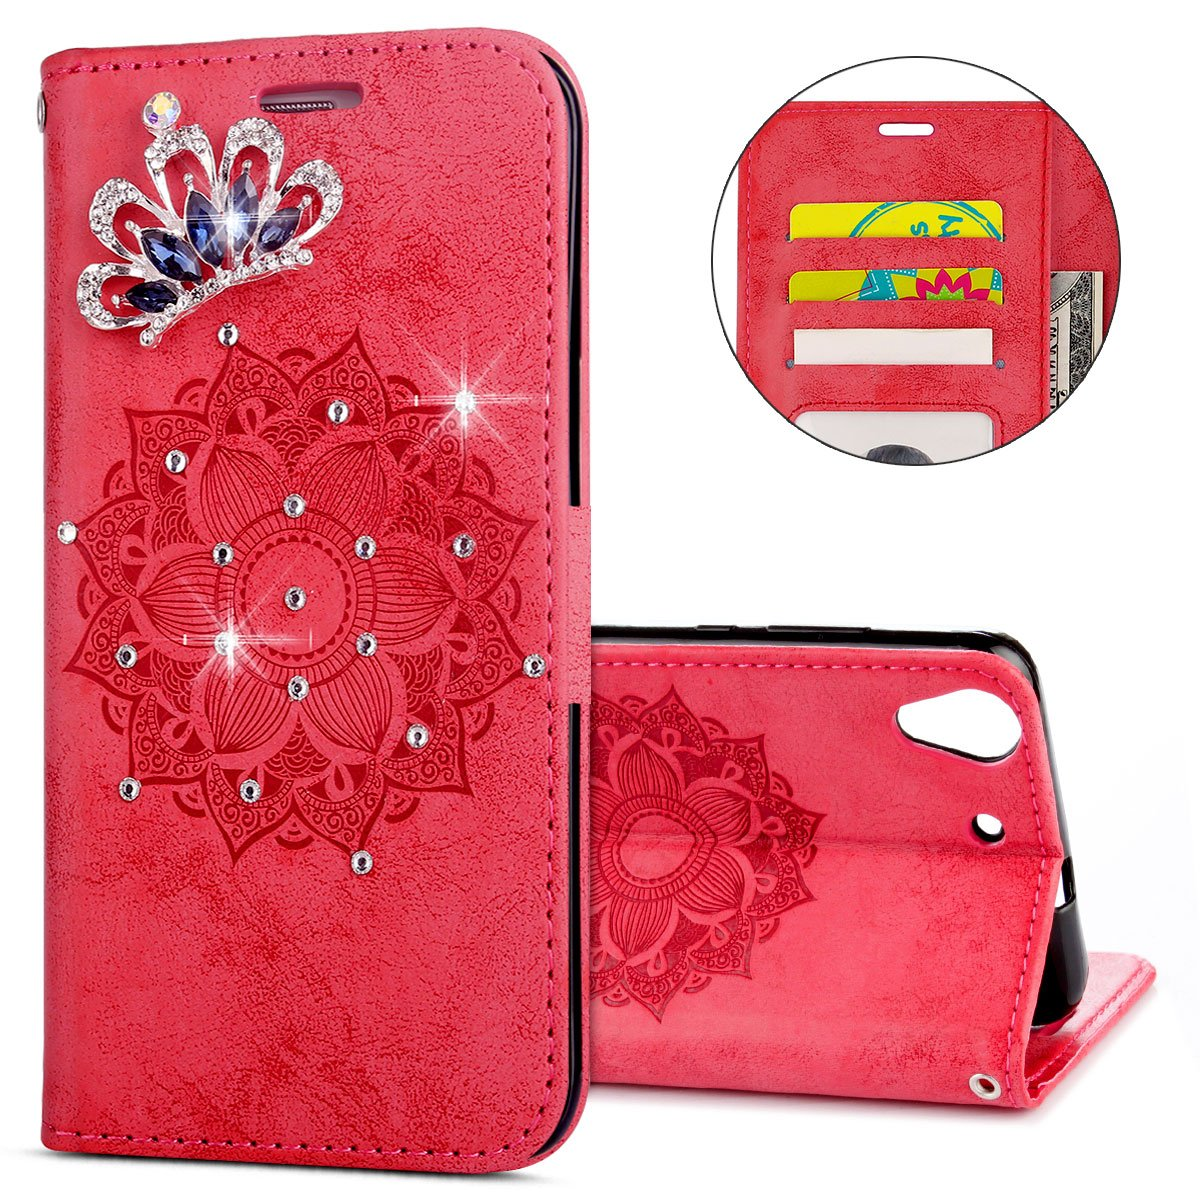 IKASEFU Huawei Y6 Case,3D Clear Crown Rhinestone Diamond Bling Glitter Wallet with Card Holder Emboss Mandala Floral Pu Leather Magnetic Flip Case Protective Cover for Huawei Y6,Red